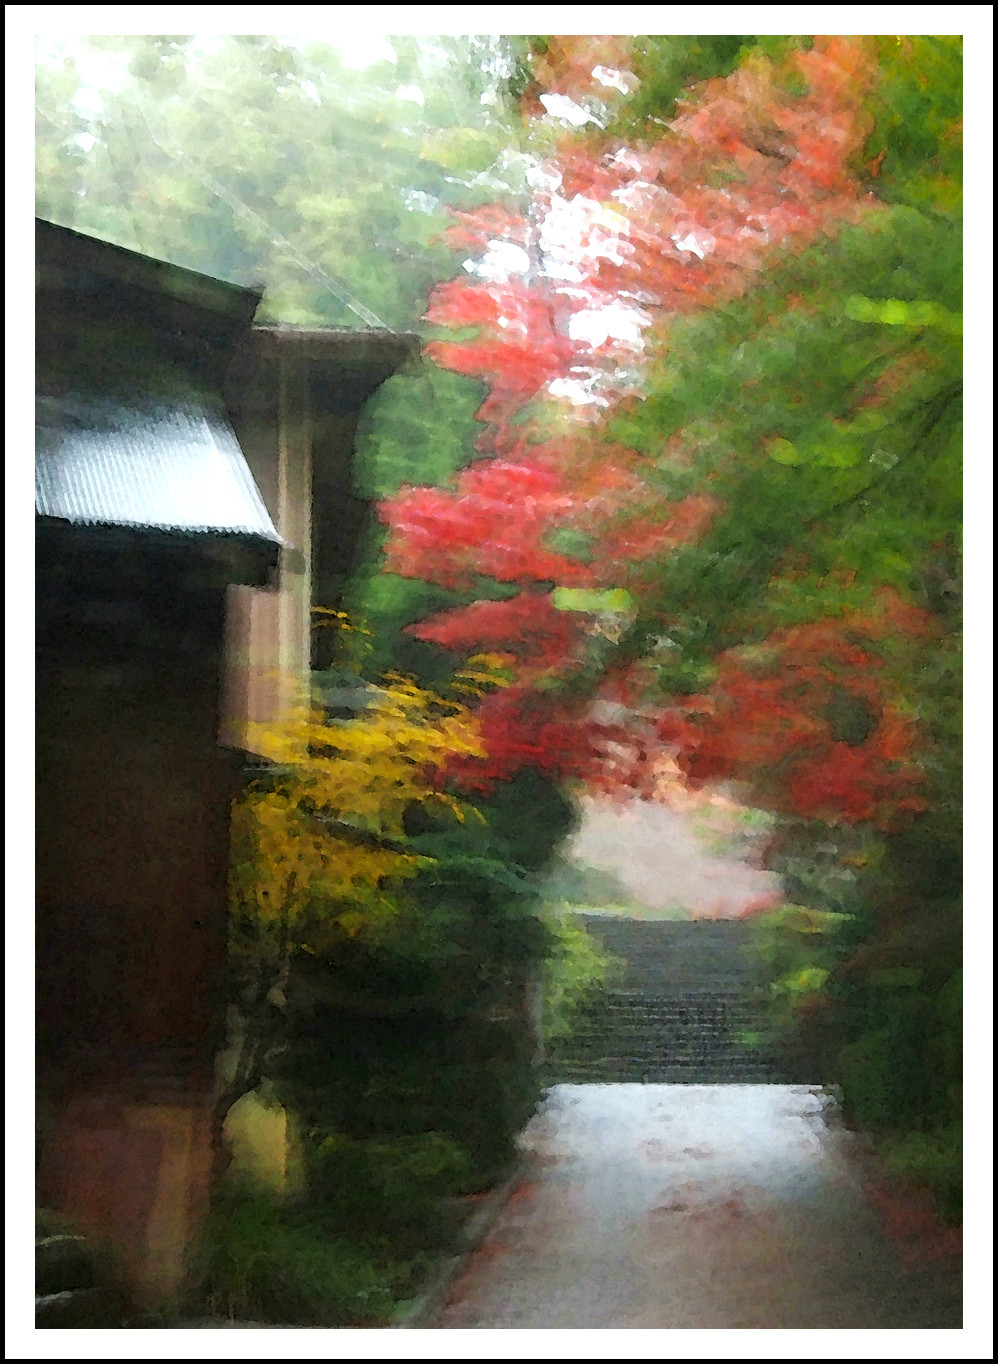 colors in the rain